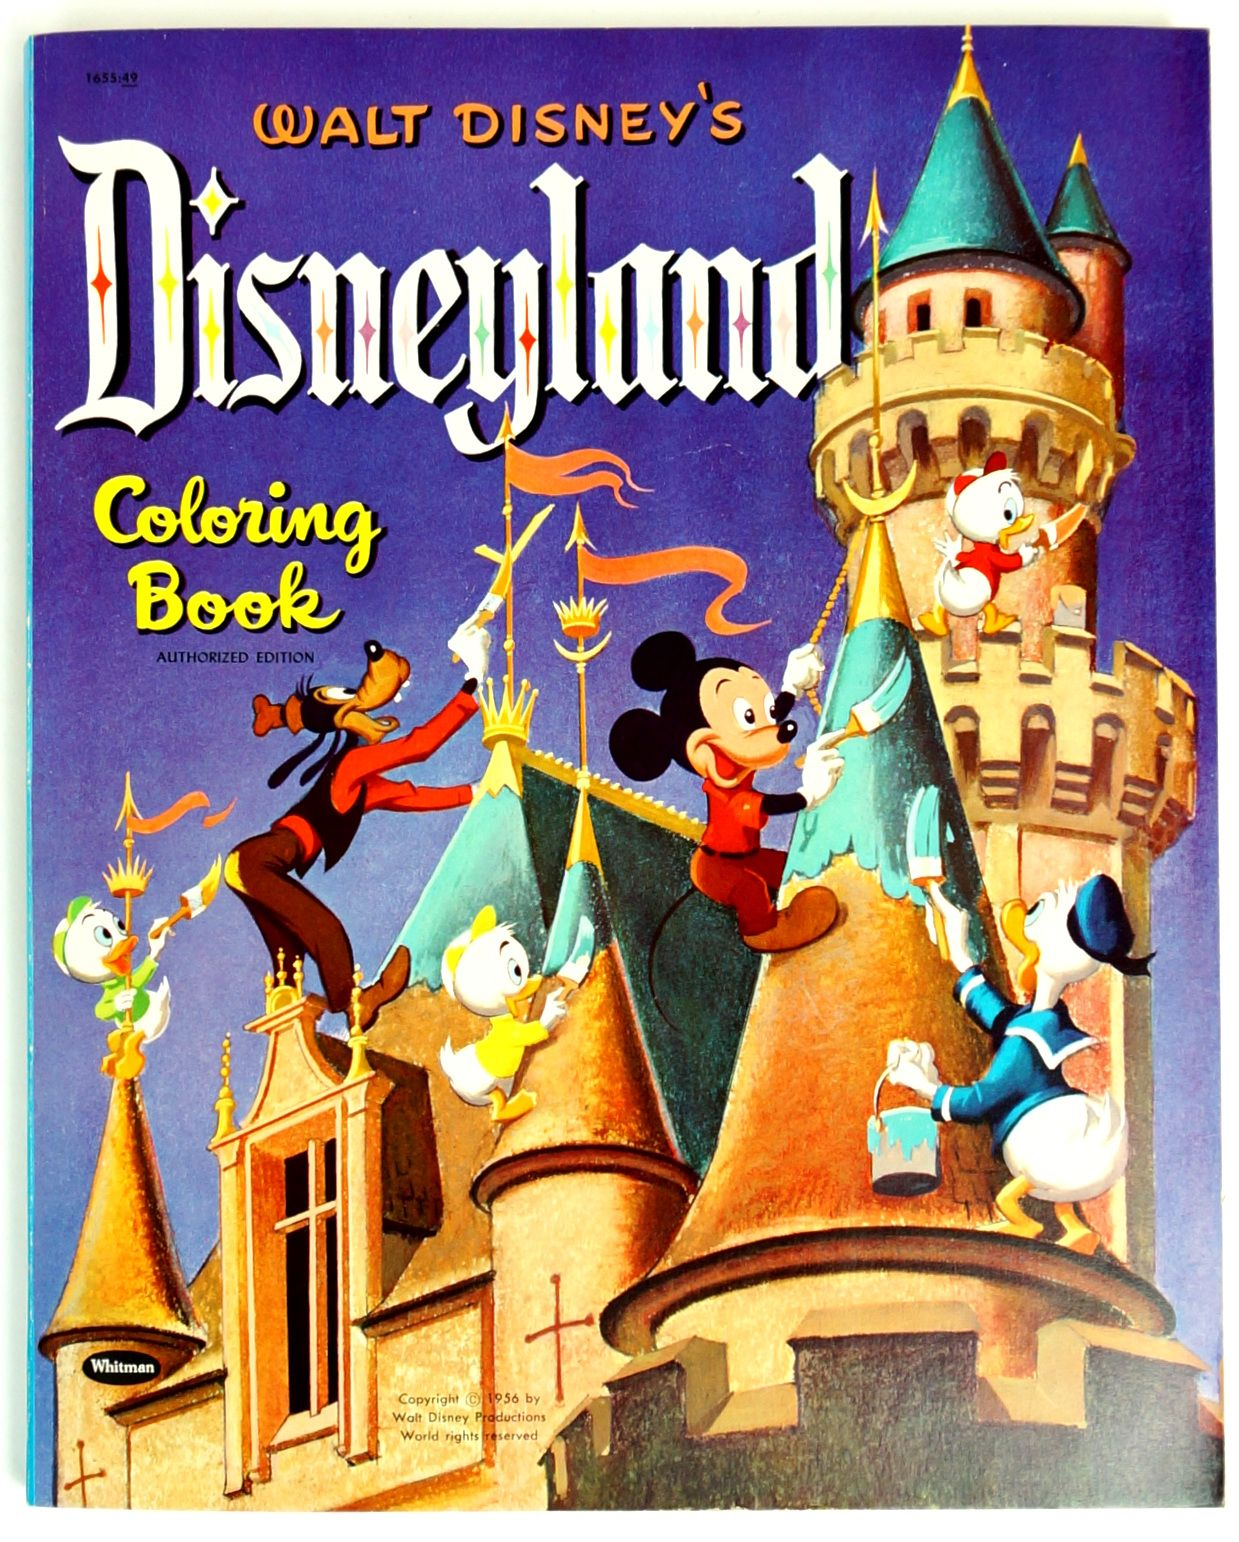 Rare Walt Disney S Disneyland Coloring Book 1956 Vgc Oversized 8 Pages Of 160 Colored Vintage 1950s Coloring Book Disney Collectible Vintage Coloring Books Coloring Books Disney Collectables